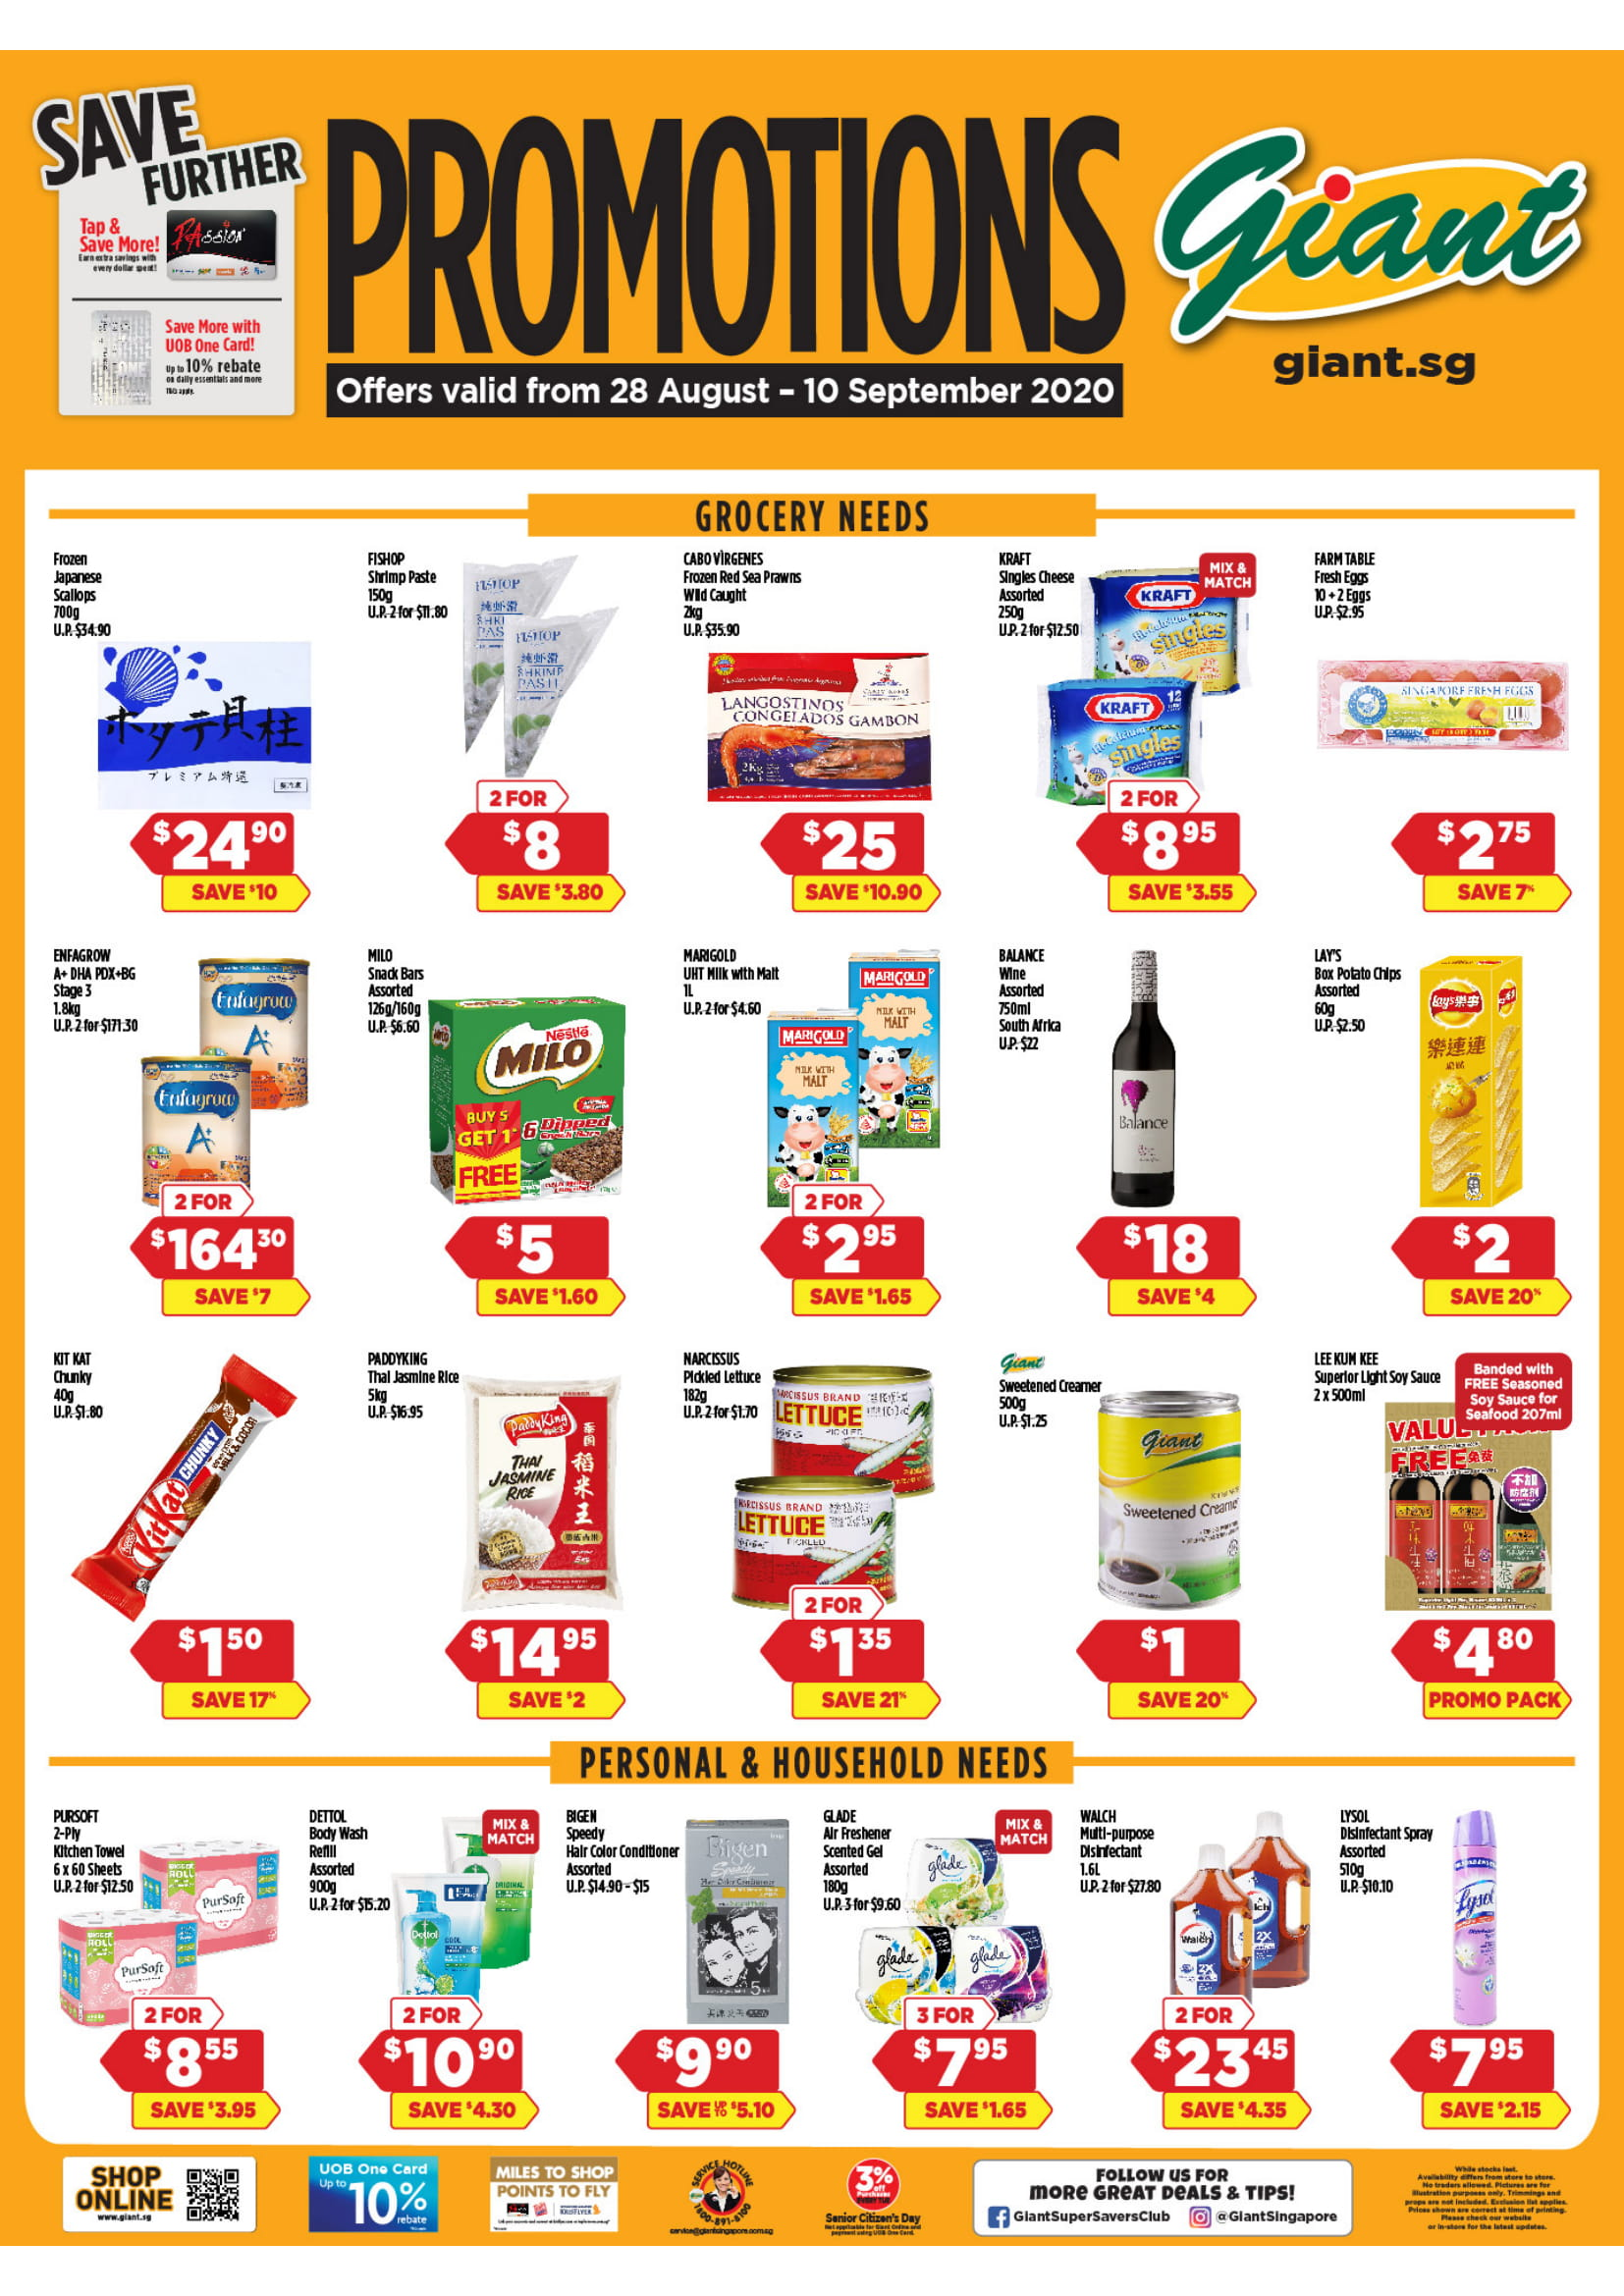 Giant promotions until 10 September 2020